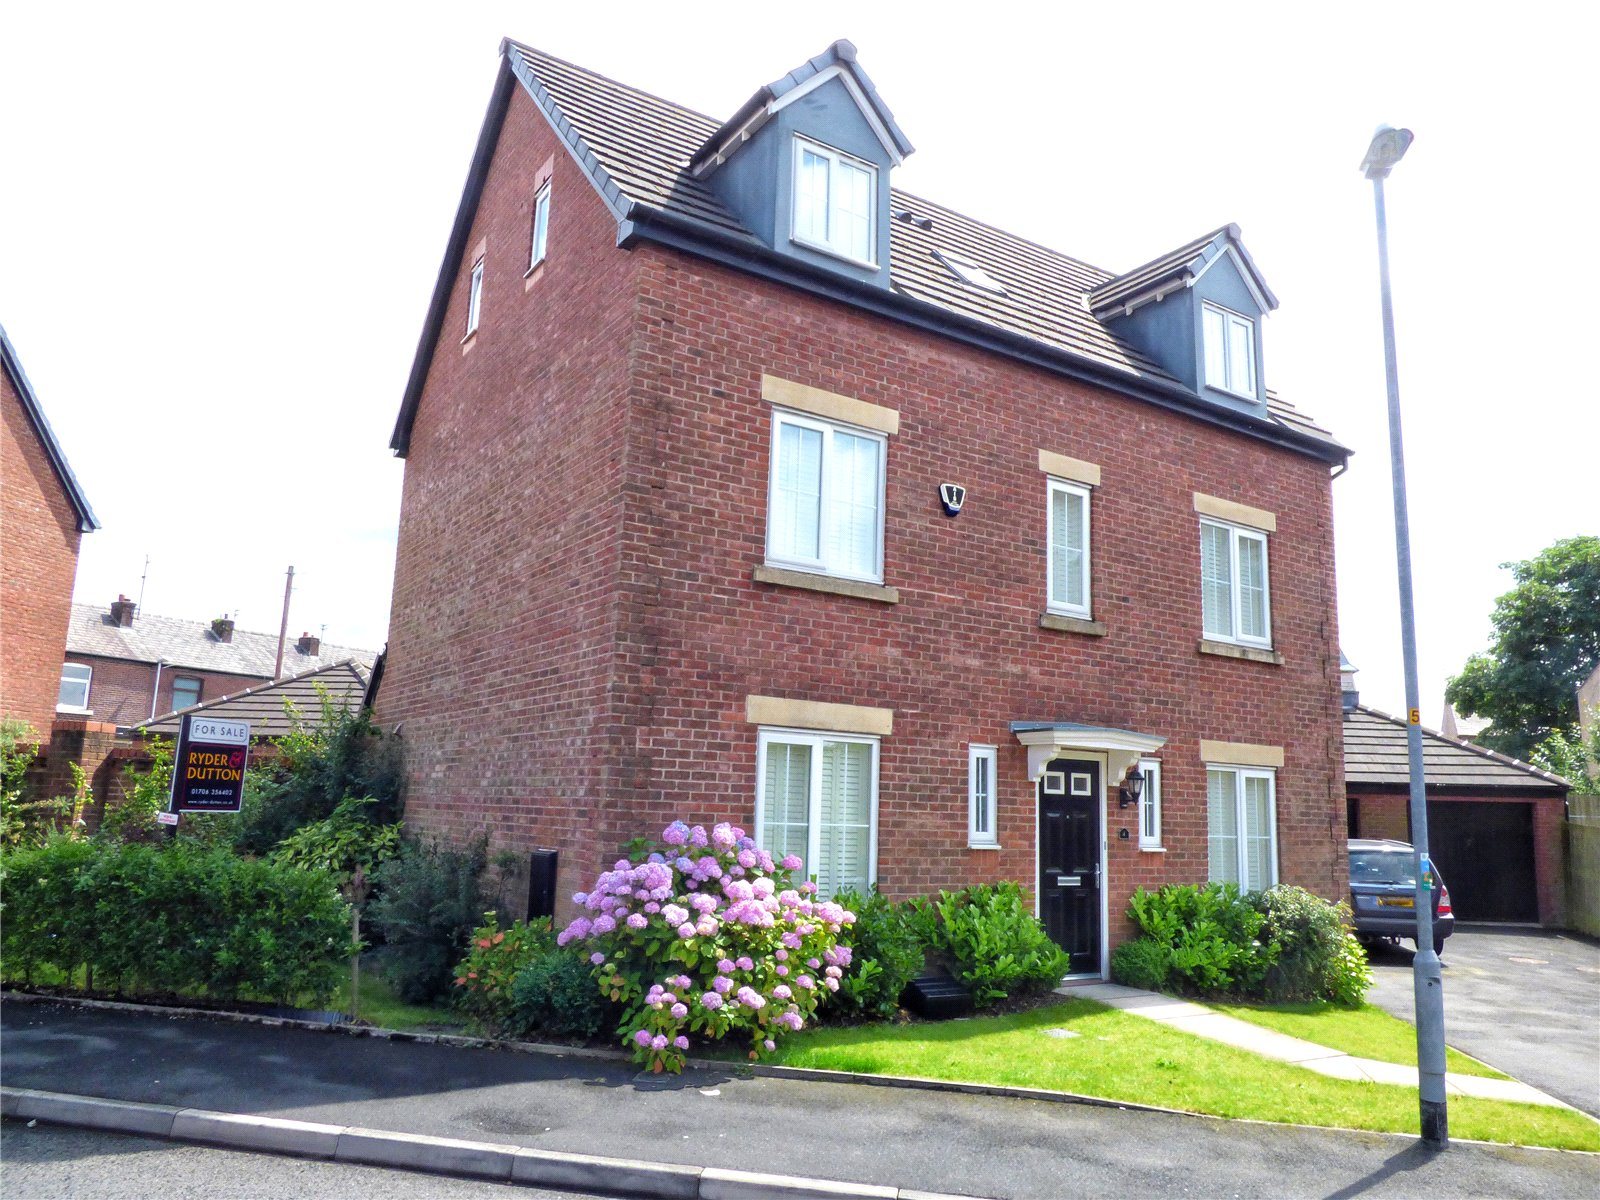 5 Bedrooms Detached House for sale in Newbold Hall Drive, Rochdale, Lancashire, OL16